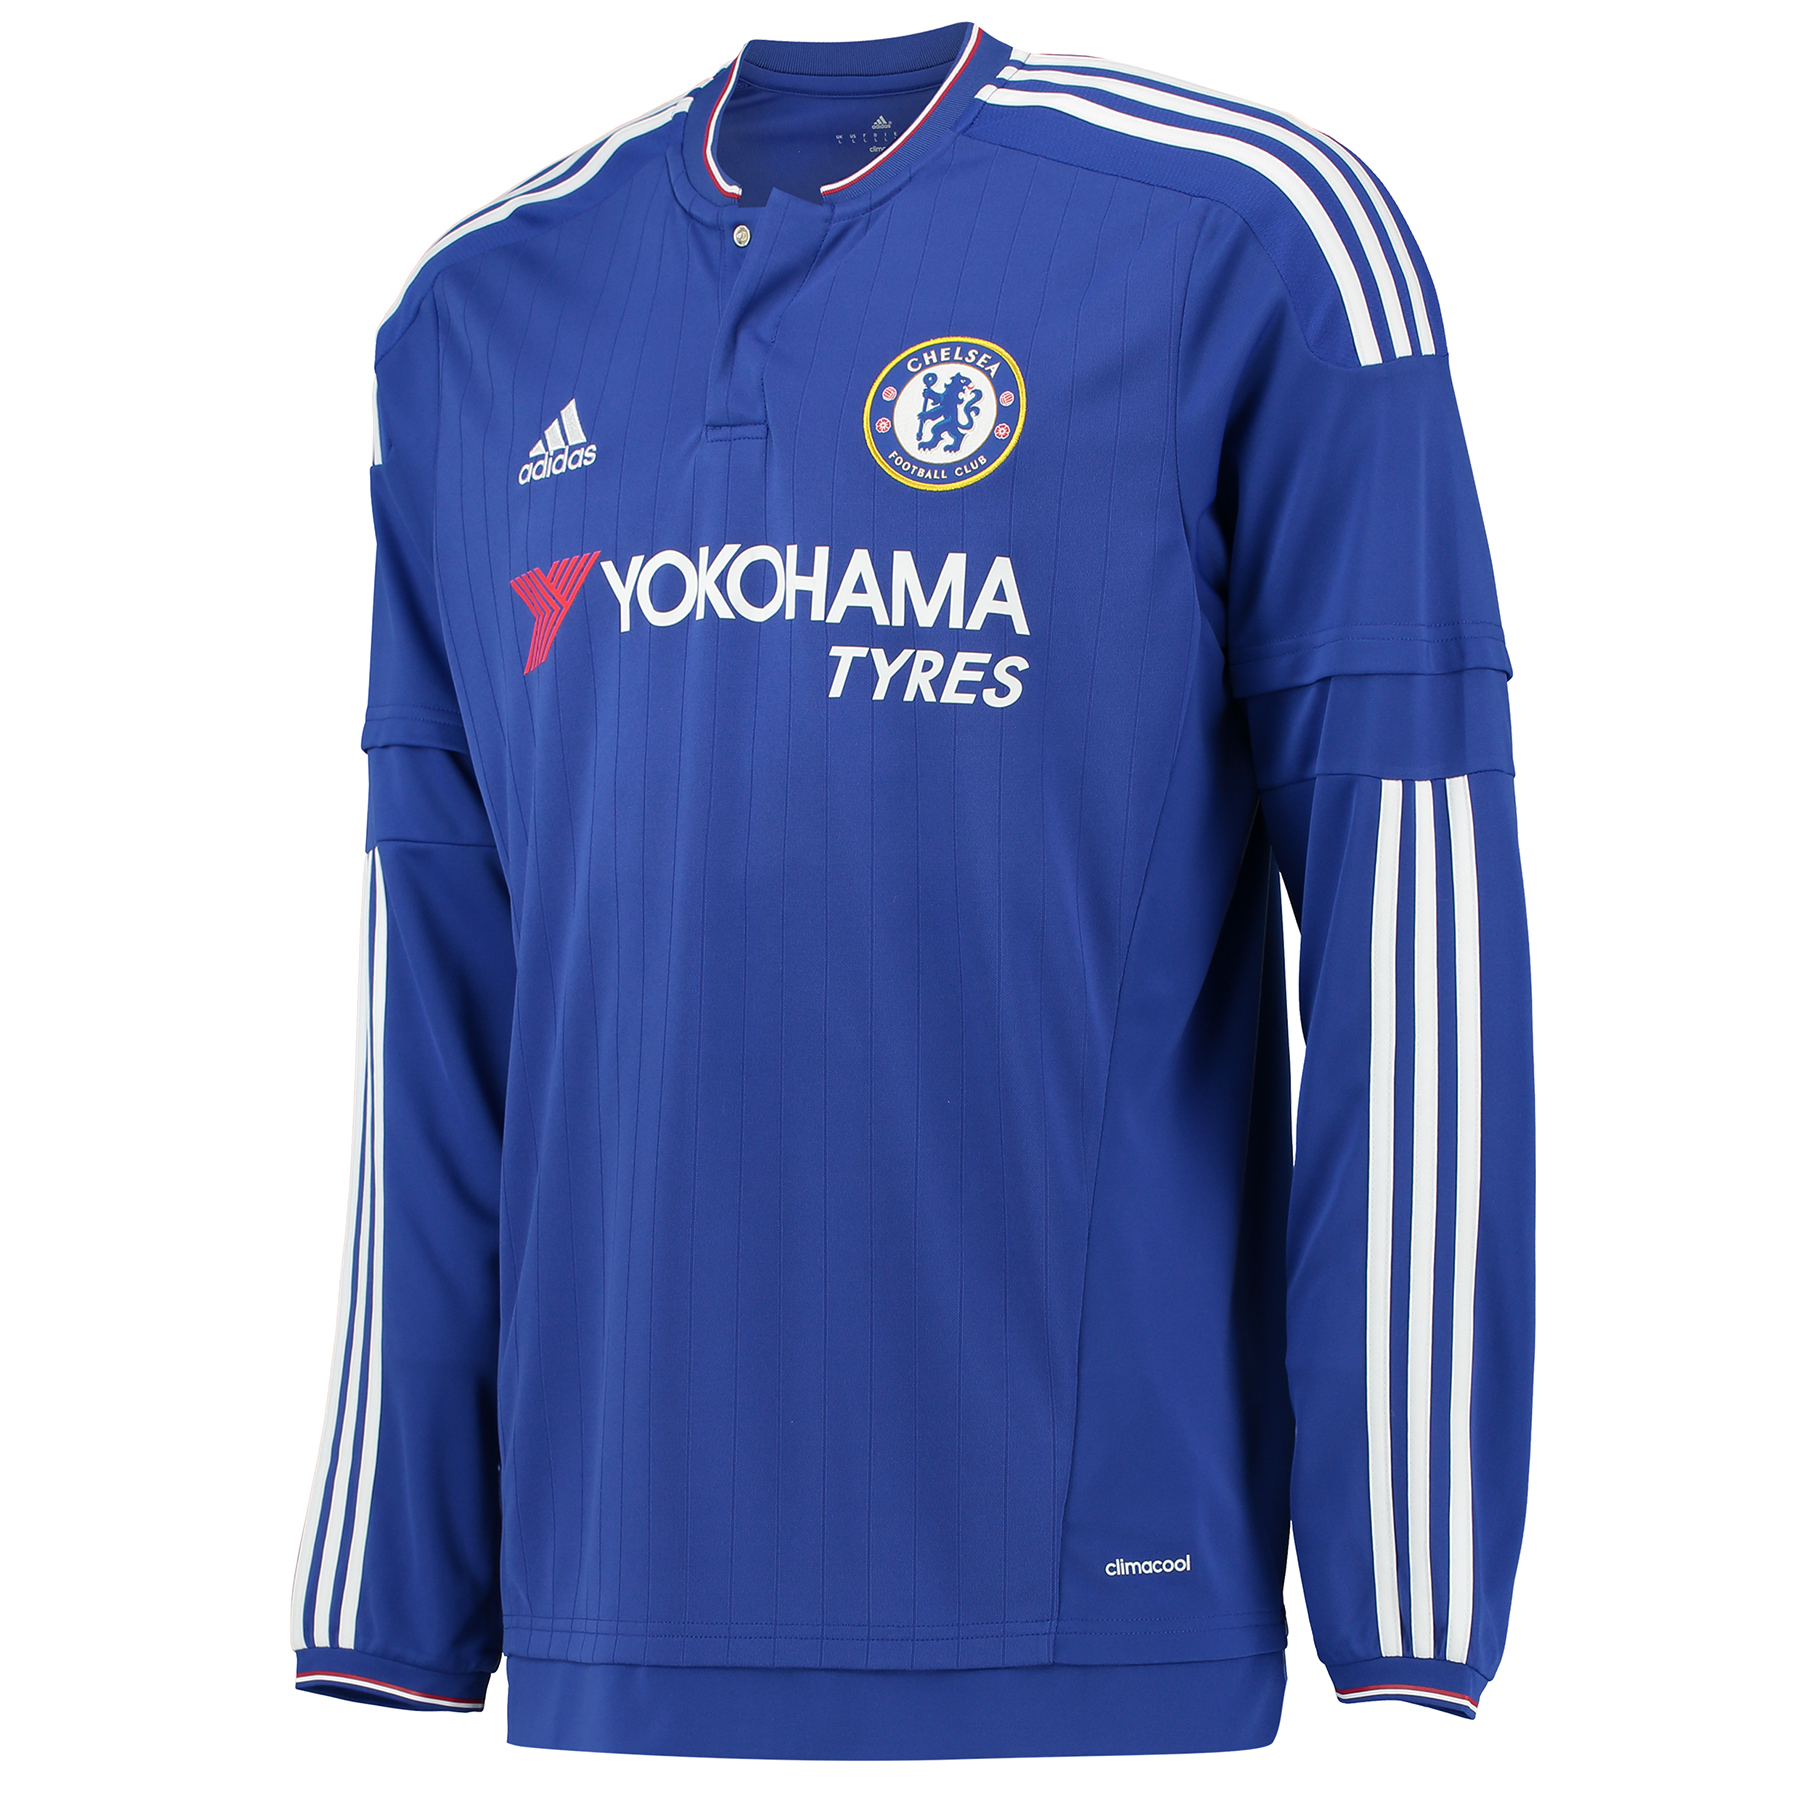 Chelsea Home Shirt 2015/16 - Long Sleeve - Kids Show your support for your favourite club with the new 2015/16 Chelsea home shirt. This kids football jersey is a version of the one the Blues wear when they touch and move at Stamford Bridge. This long sleeve shirt features climacool® ventilation and Chelsea's team badge on the chest. Join the likes of Diego Costa, Cesc Fabregas and Eden Hazard and order your new Chelsea shirt today! Benefits: Engineered fabric on front CLIMACOOL® Provides heat and moisture management through ventilation Regular Fit Club crest: woven badge 100% Polyester